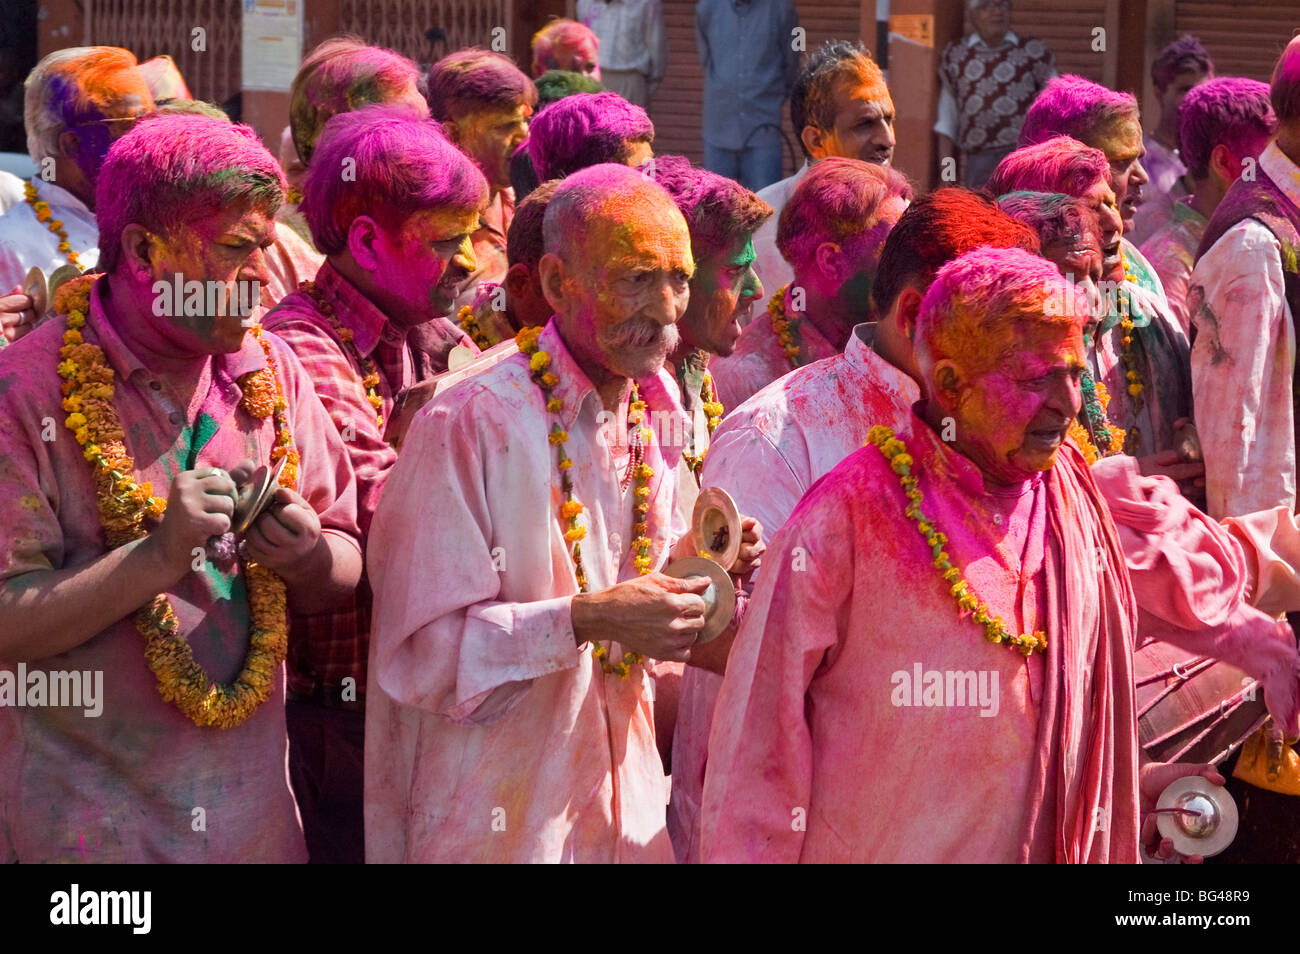 Garlanded men with cymbals in religious procession going to the temple at Holi festival, Jaipur, Rajasthan, India, - Stock Image